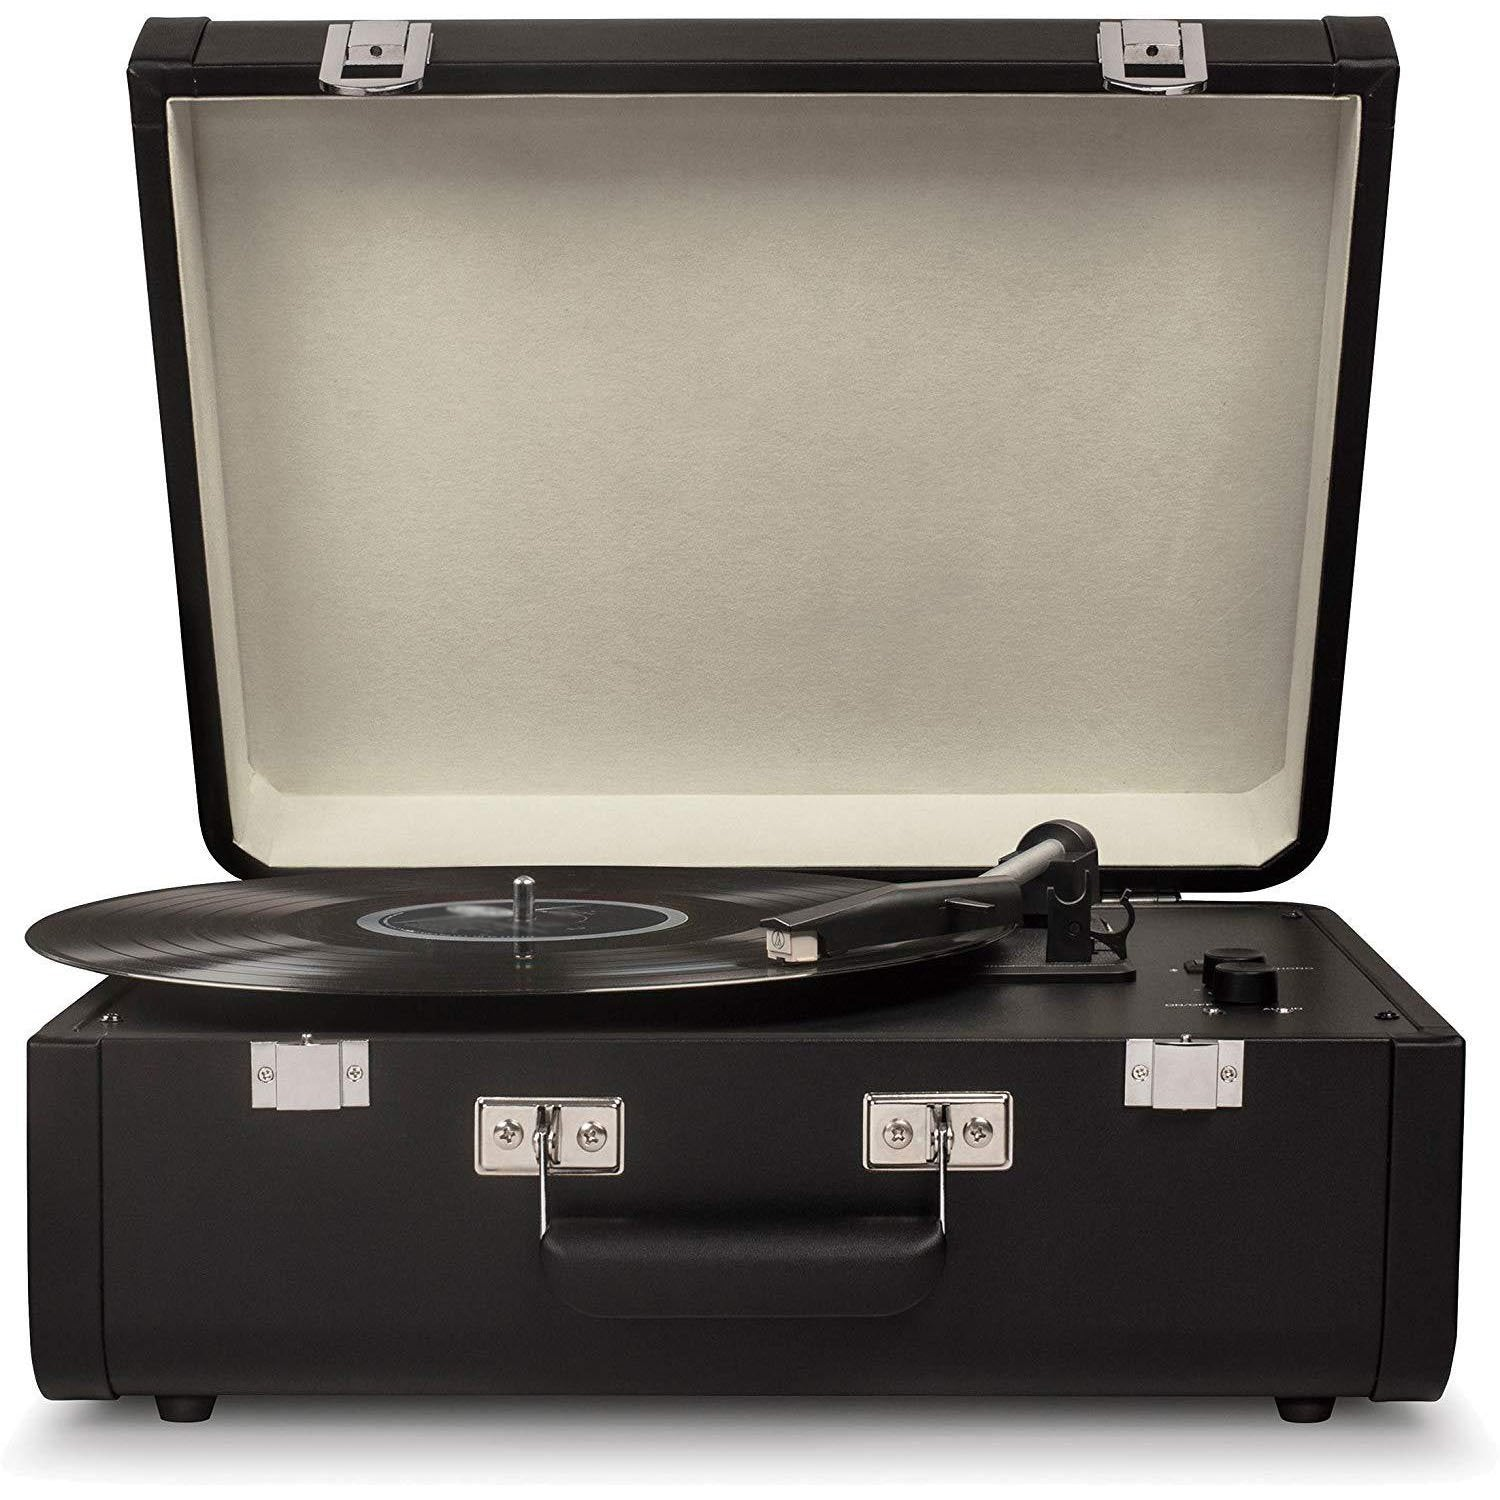 Bluetooth Suitcase Turntable With Built-in Speakers,Black